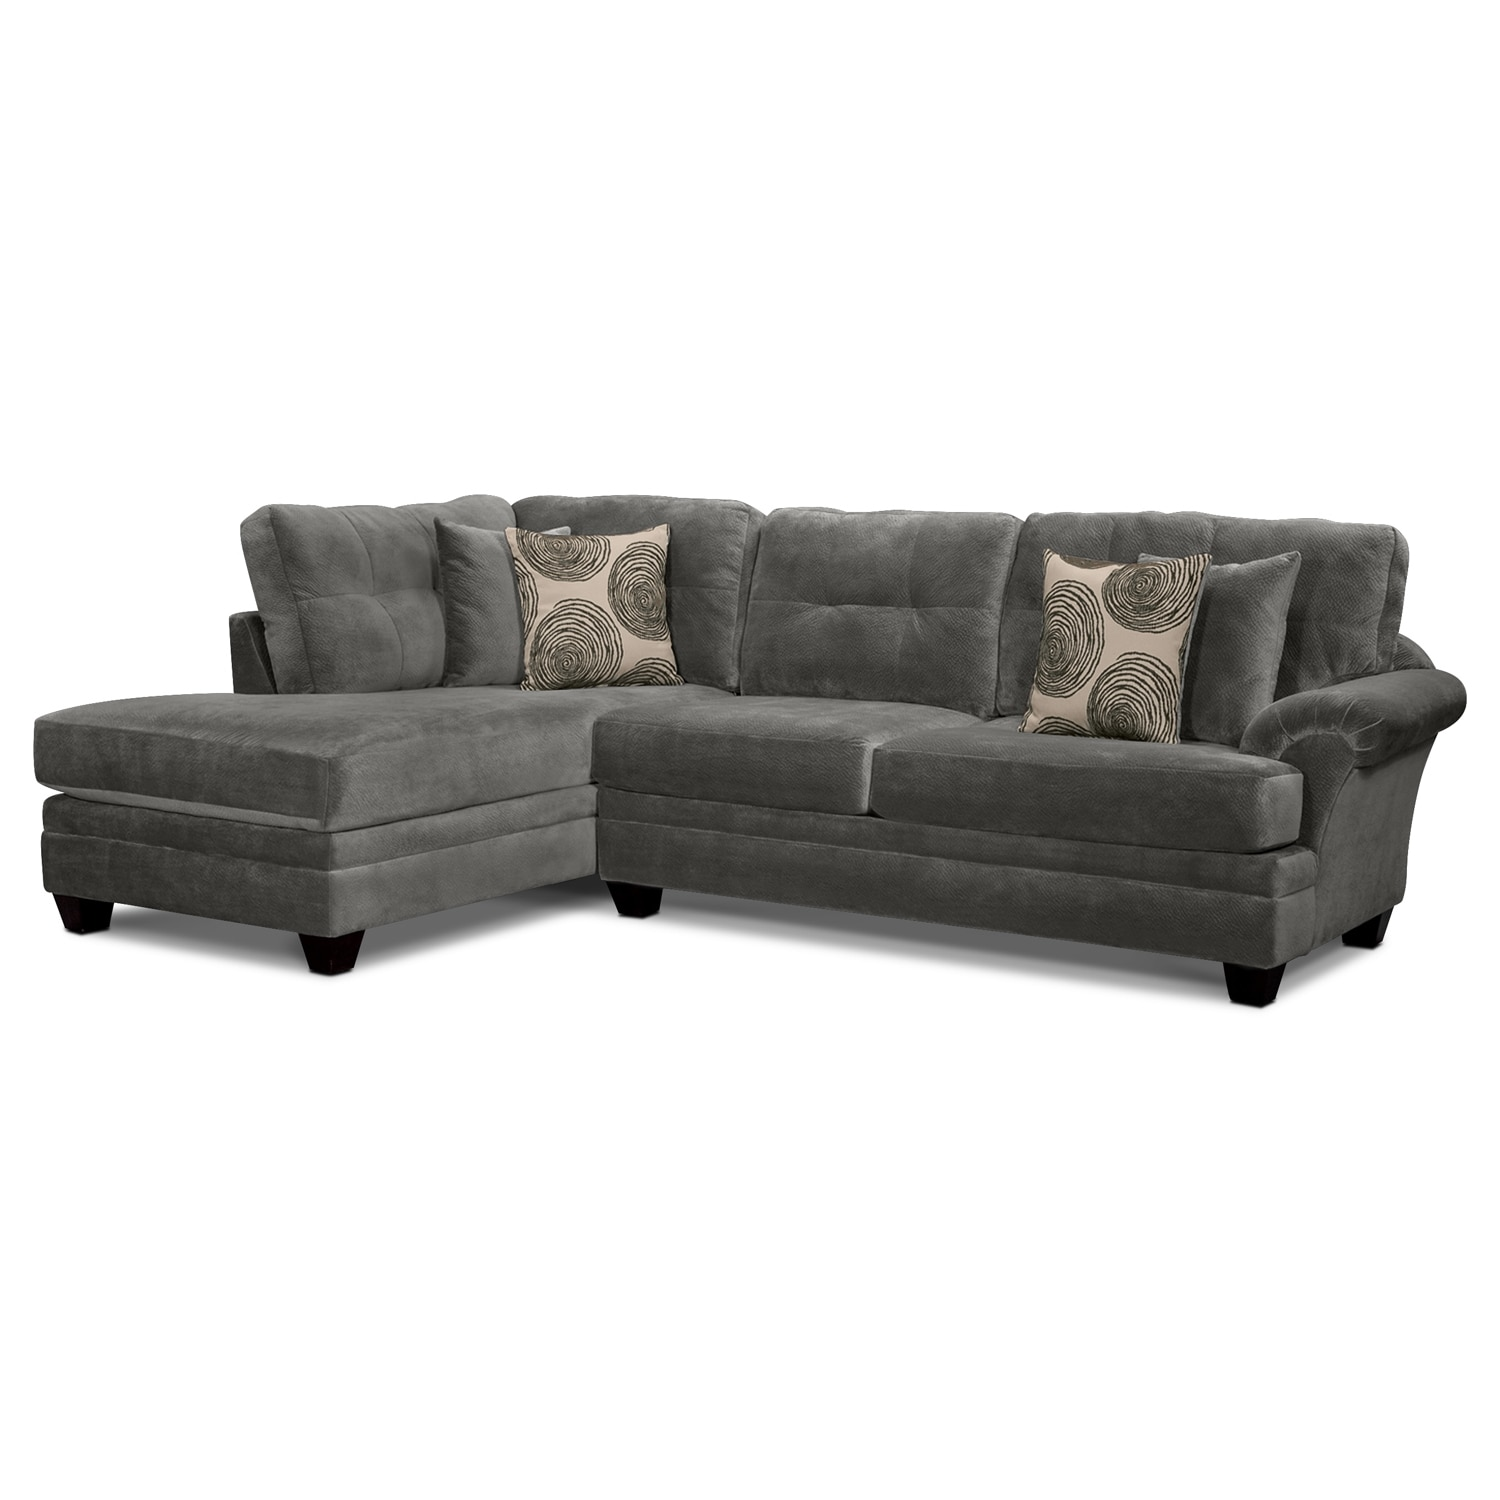 Cordoba Gray II 2 Pc. Sectional (Reverse)